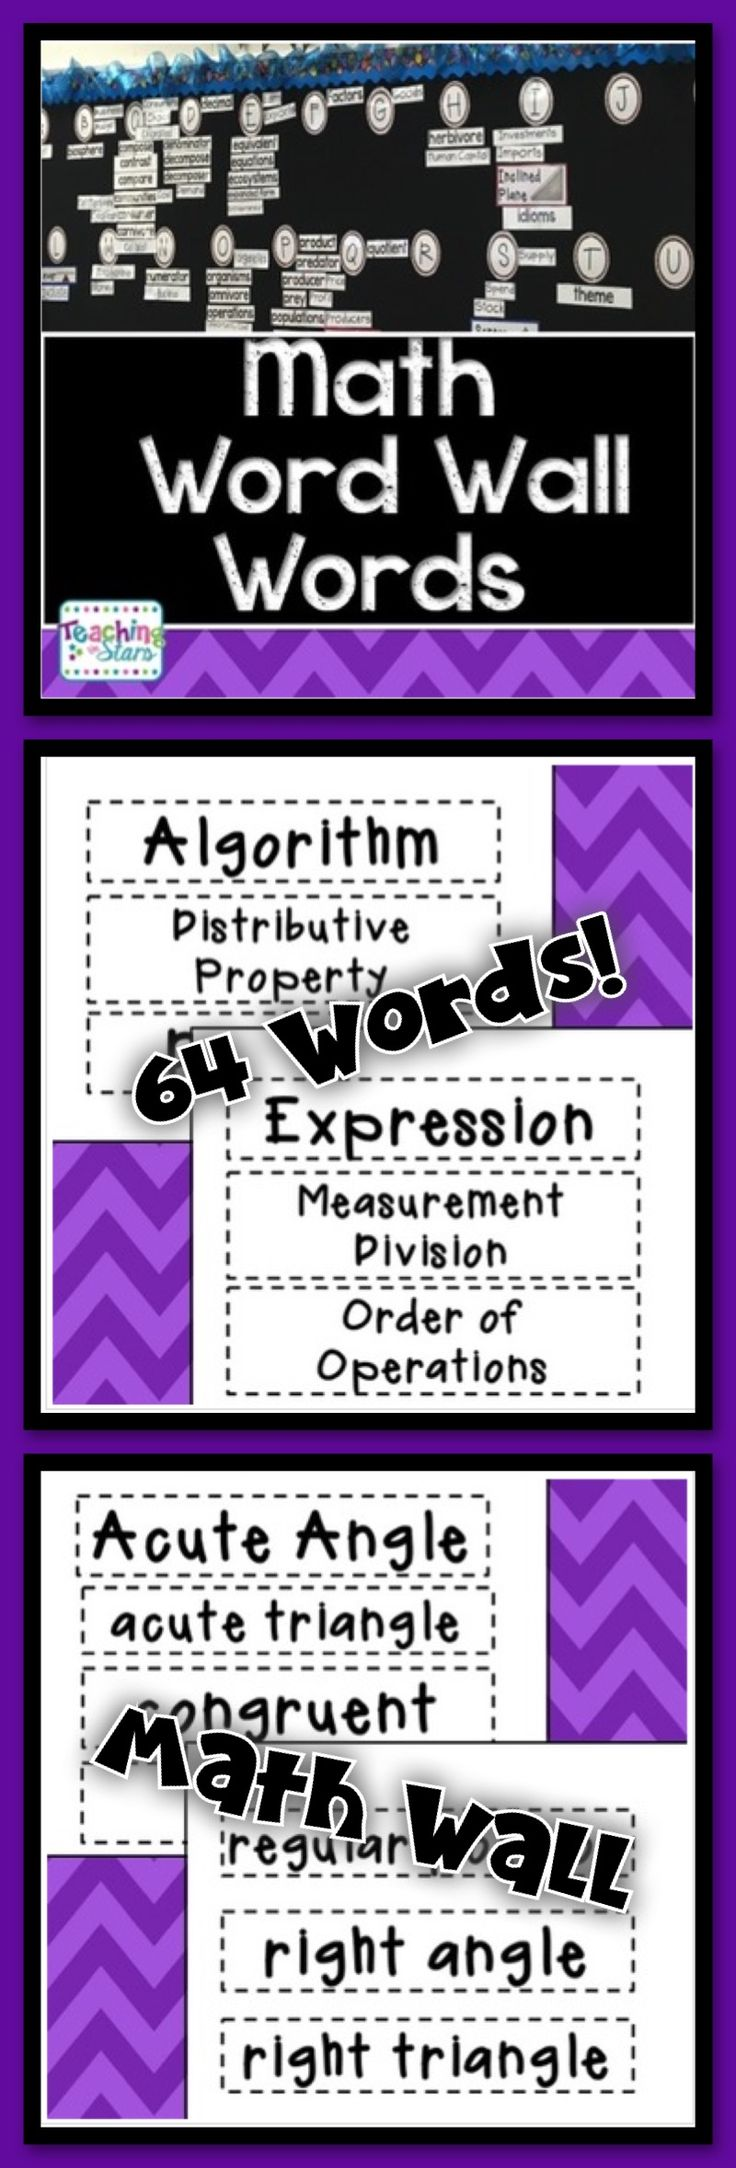 Math Vocabulary Word Wall Words will help students become familiar with math vocabulary as they learn content.